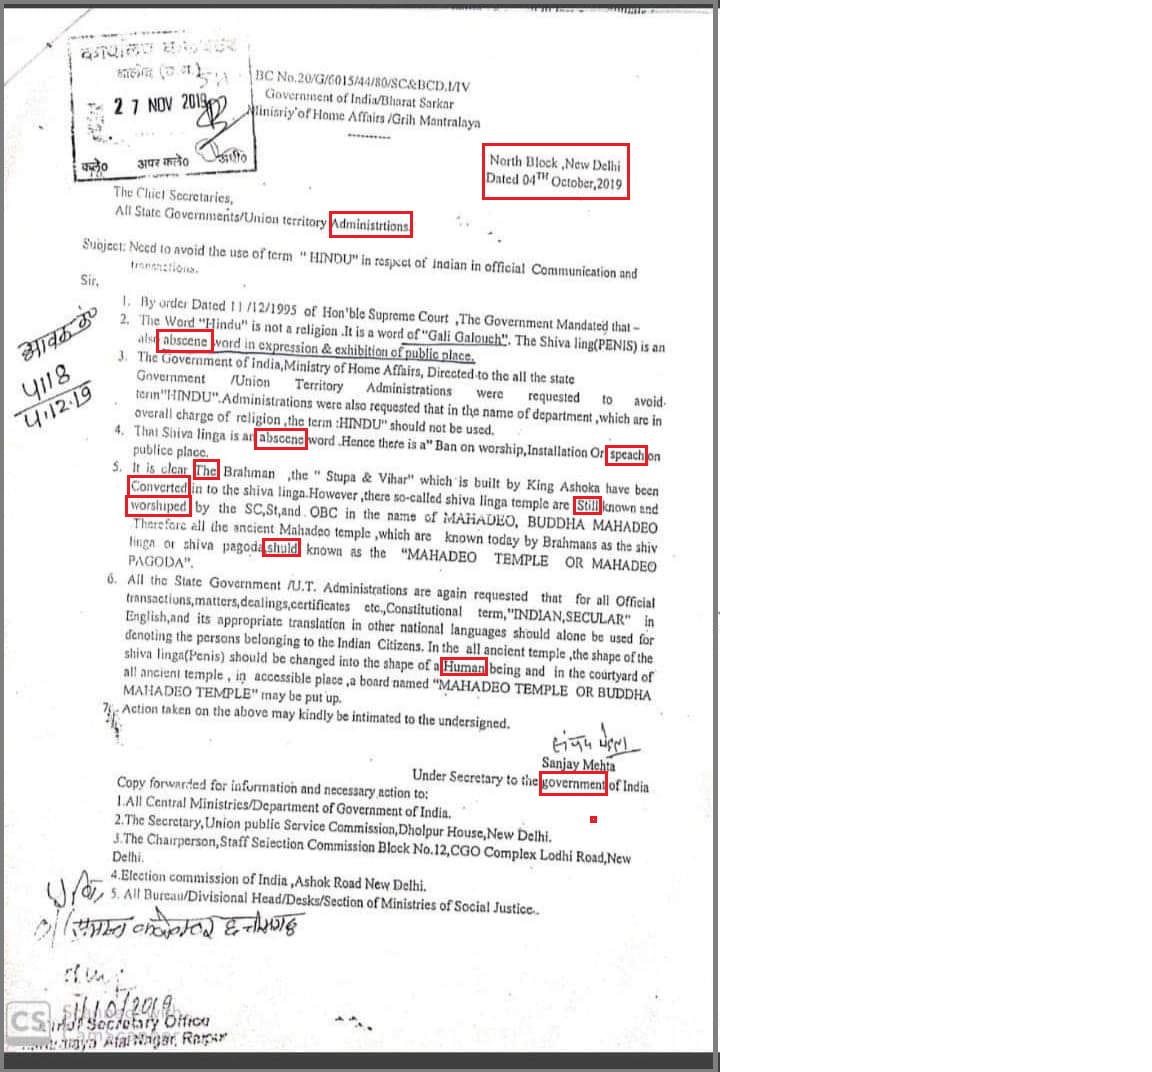 C:\Users\hp\Downloads\Ministry of Home Affairs circular2.png